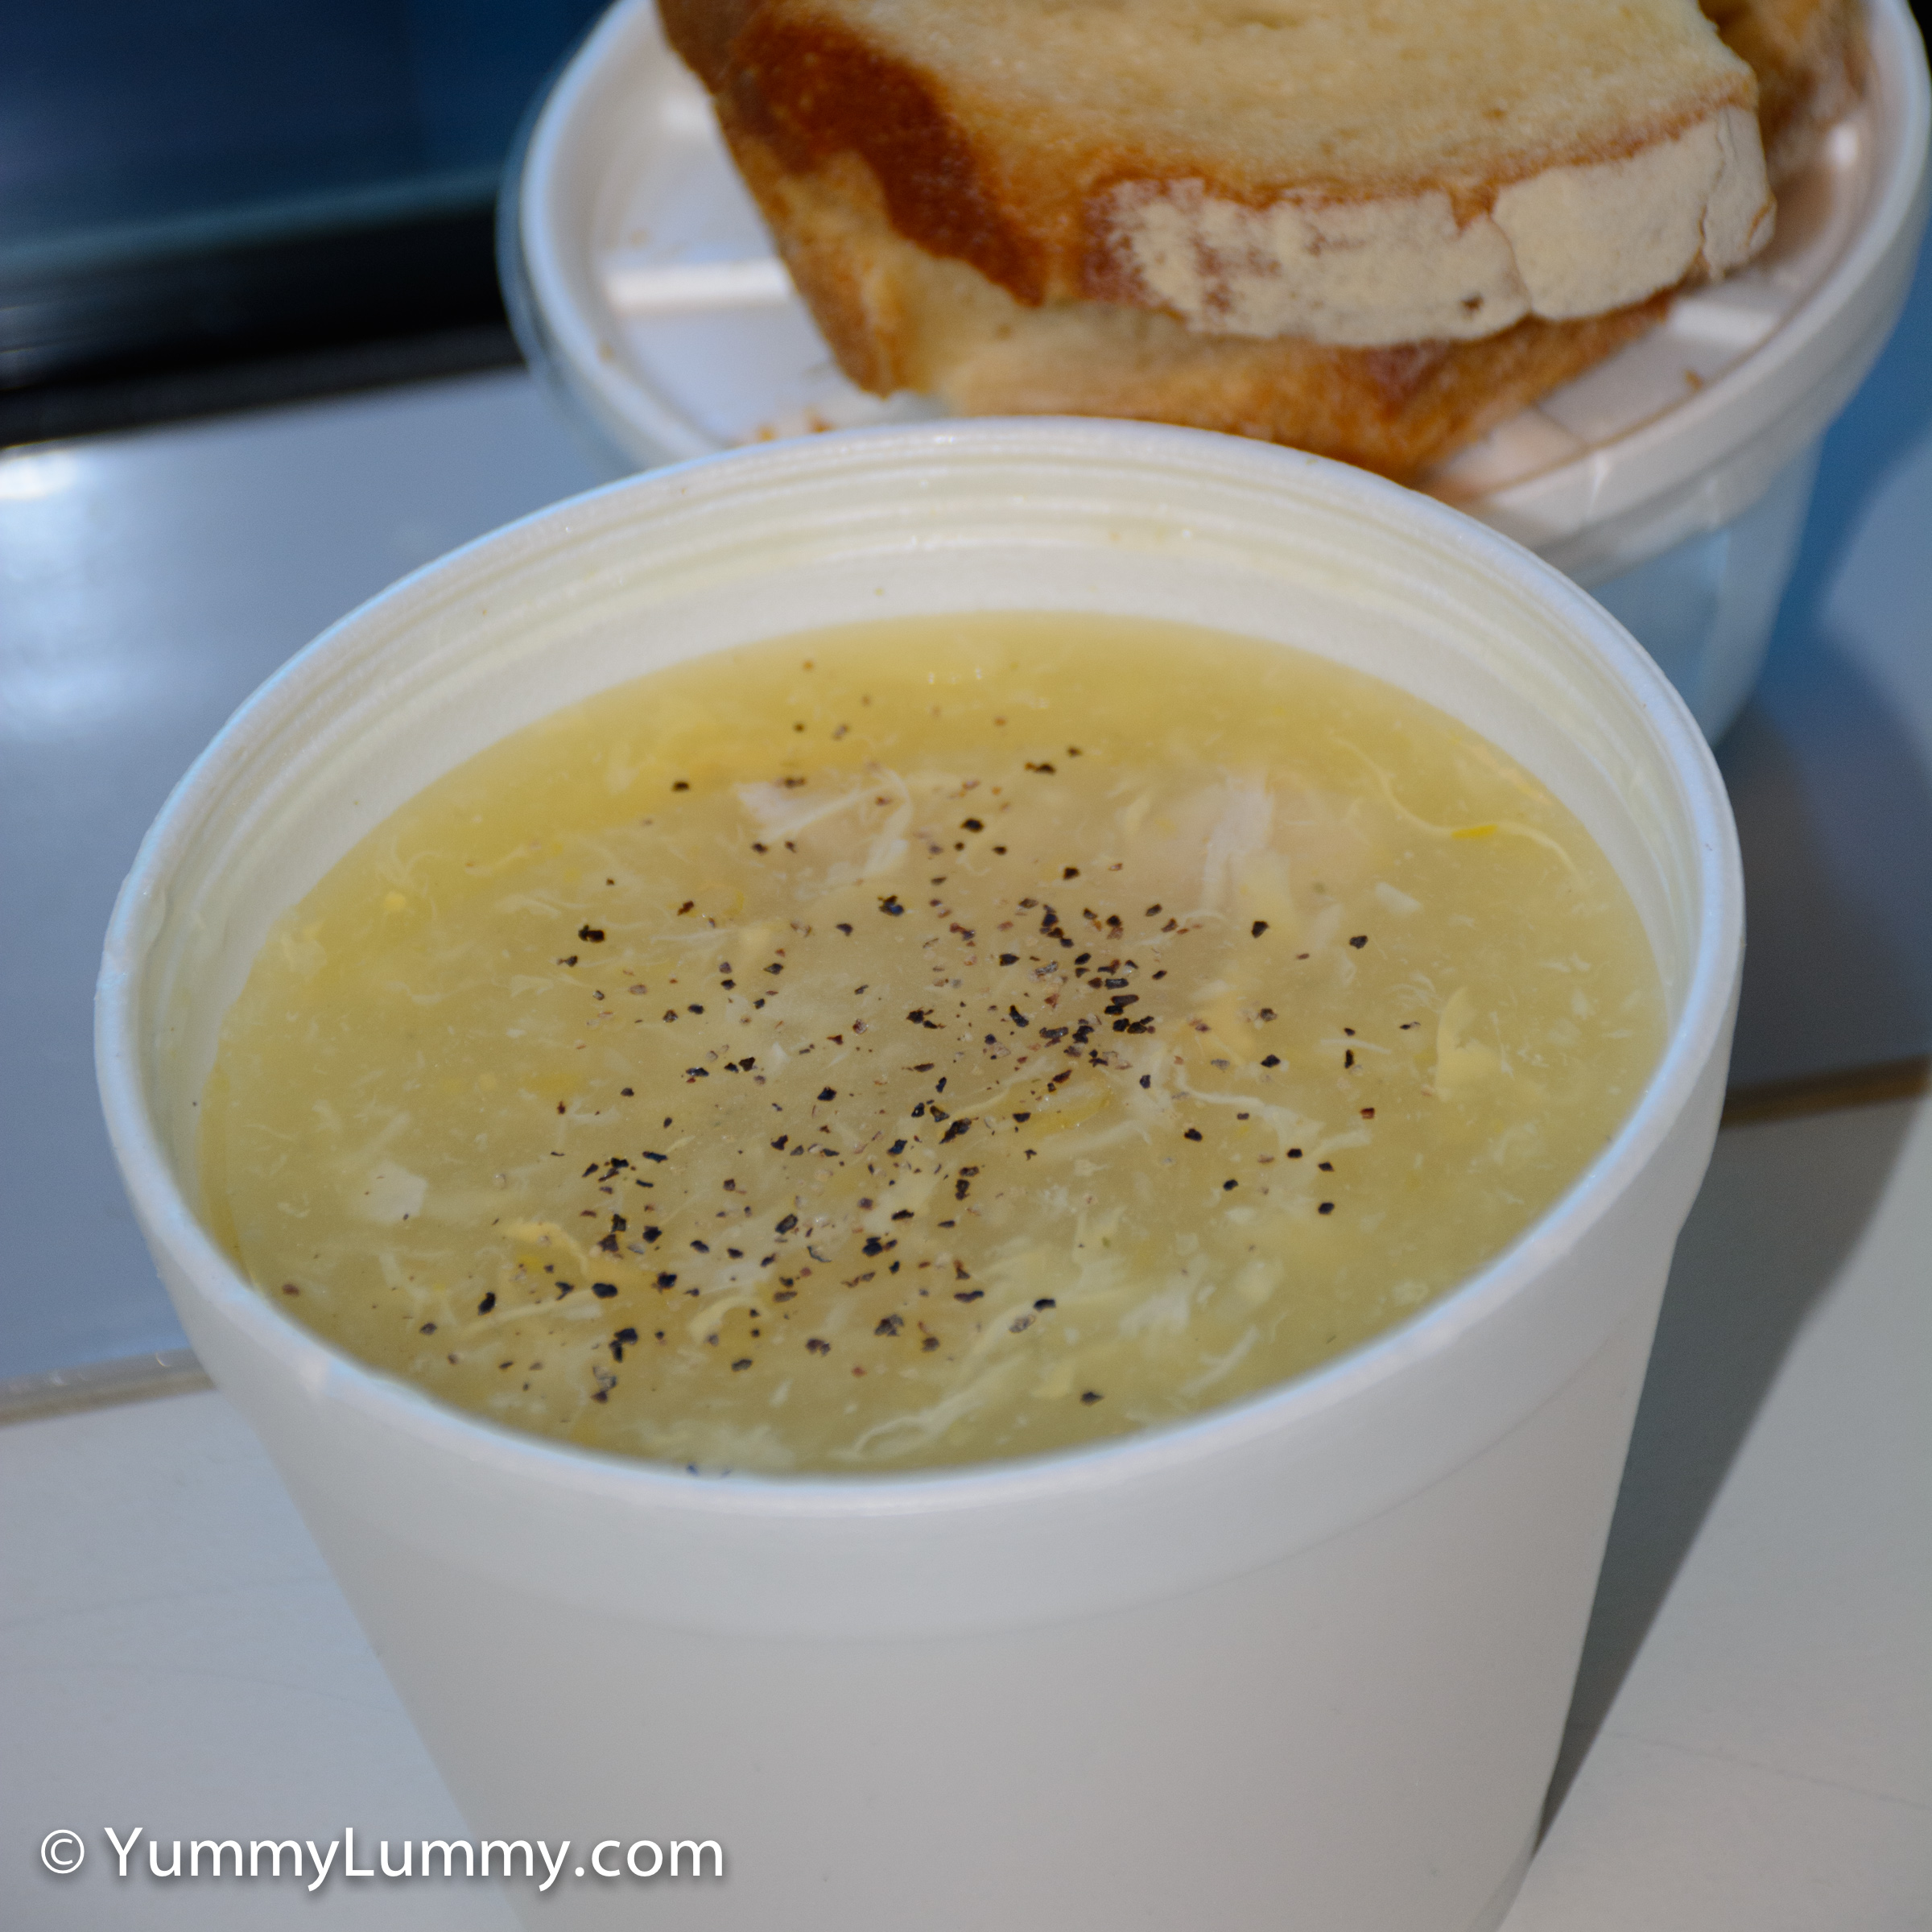 Happy hump day lunch is chicken and corn soup from Urban Bean Espresso Bar